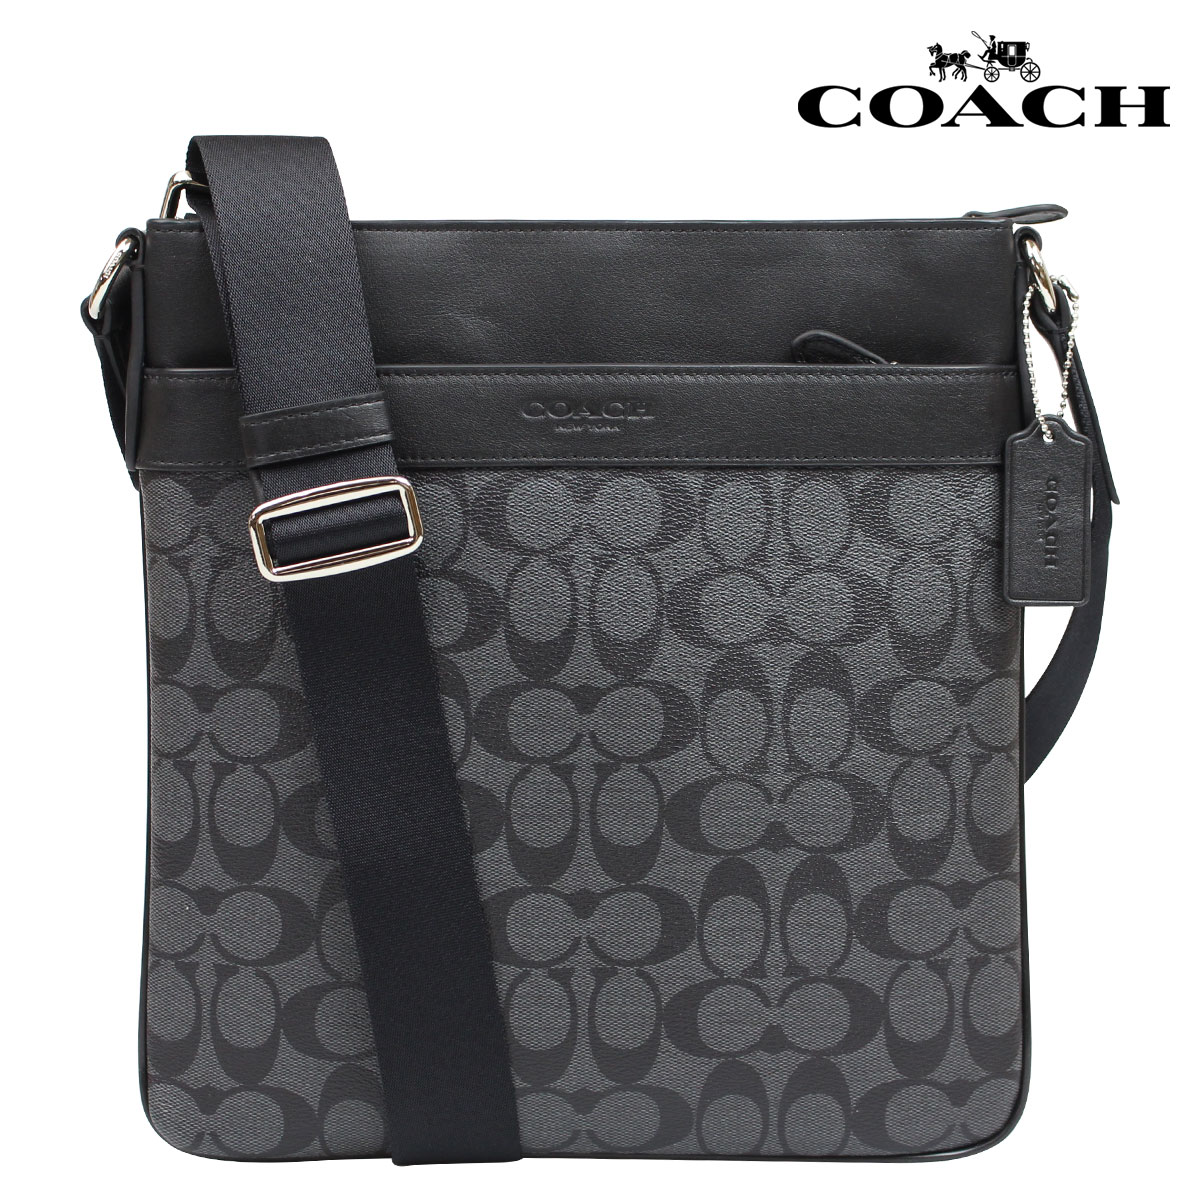 As Accessible Luxury High Grade Hand Brand Attracts Fans All Over The World And Is Widely Loved In An